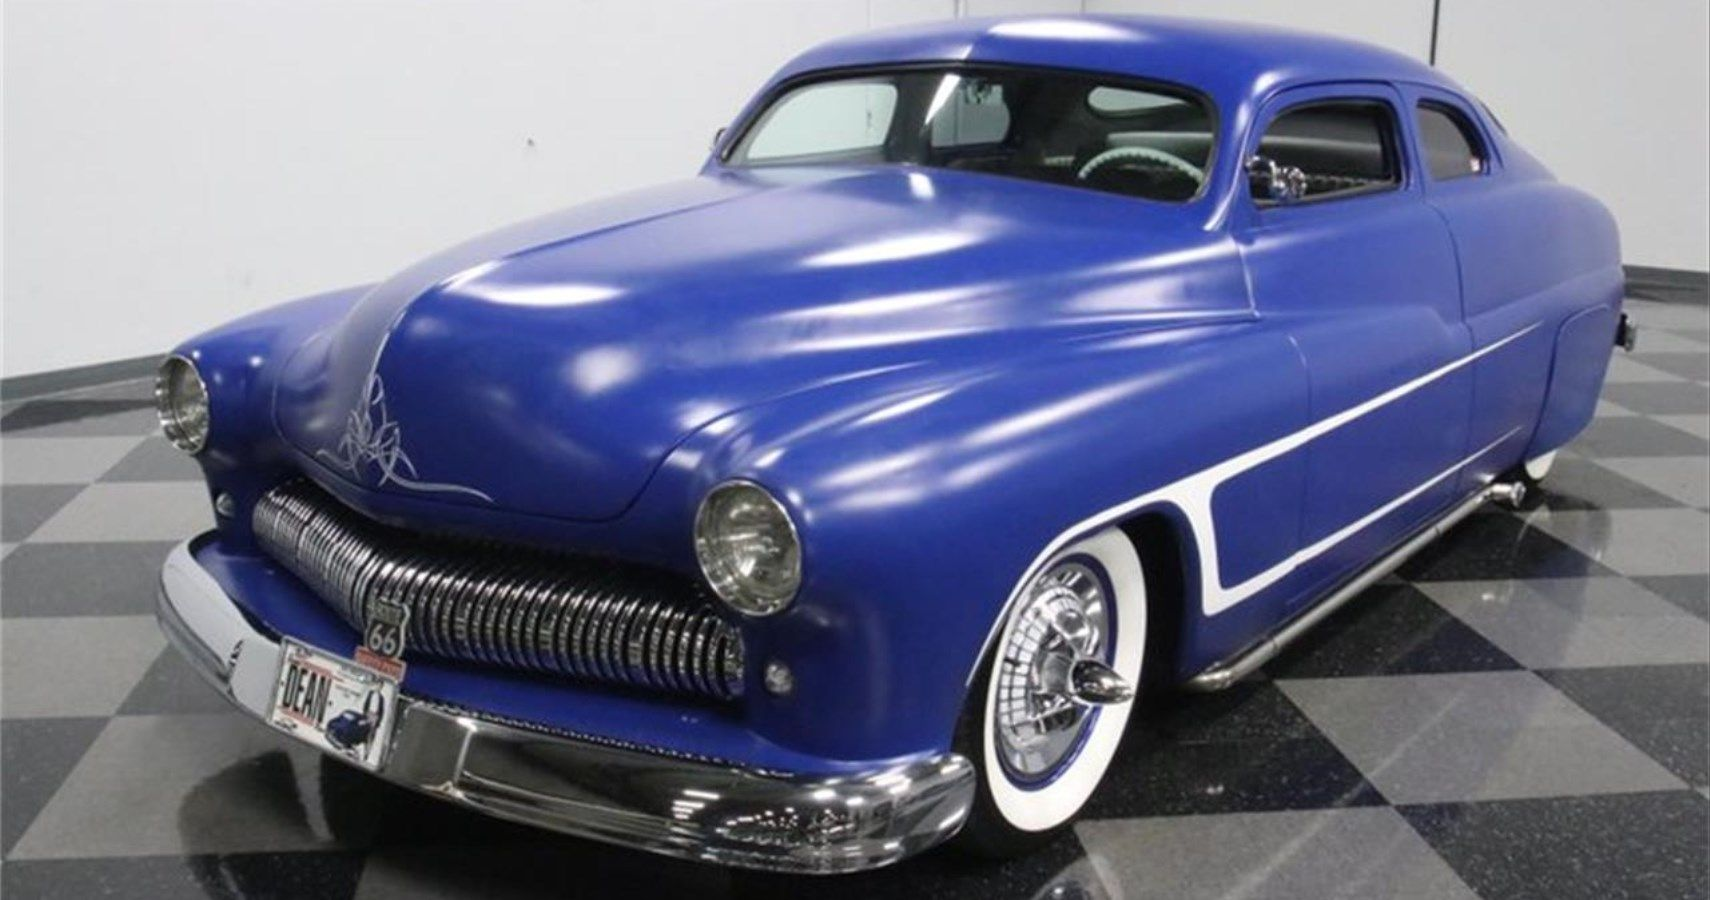 This Sleek 1950 Mercury Eight Finished In Matte Blue Is A Custom Hot Rod Beauty